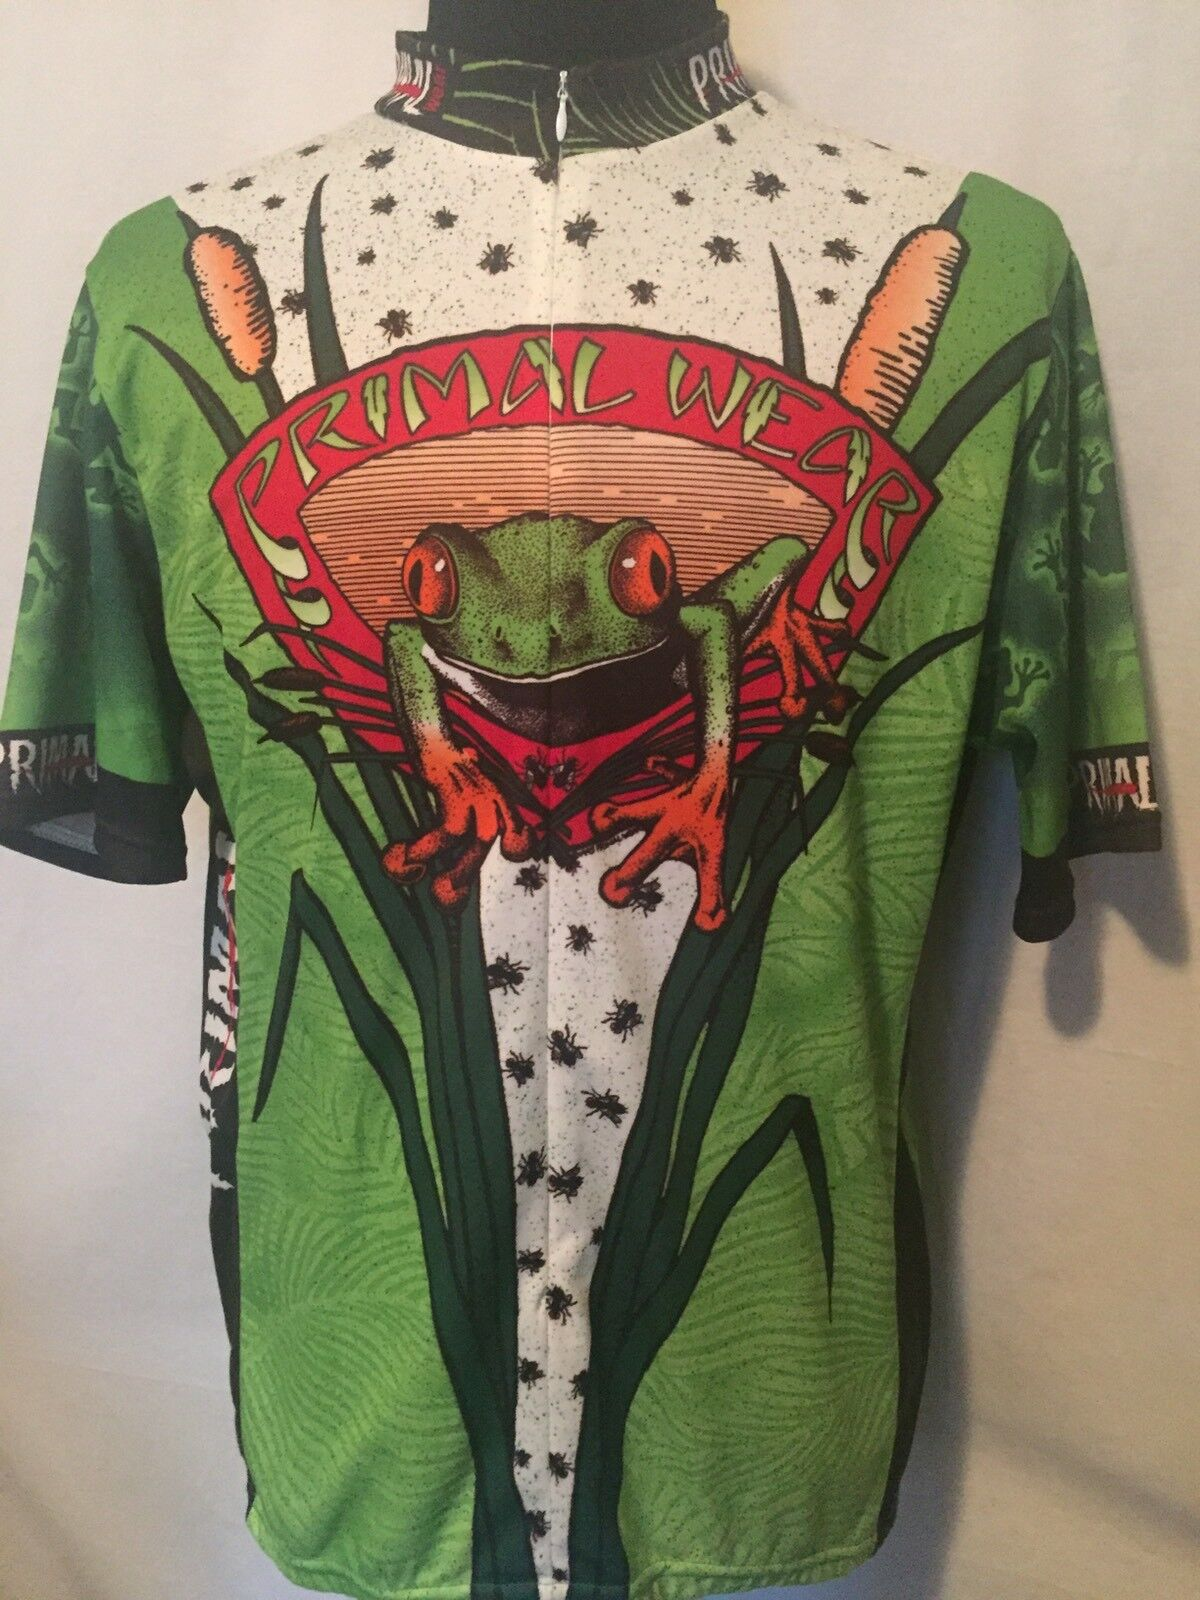 Primal Cycling Jersey 2XL XXL Men's Frog  Green  save up to 30-50% off